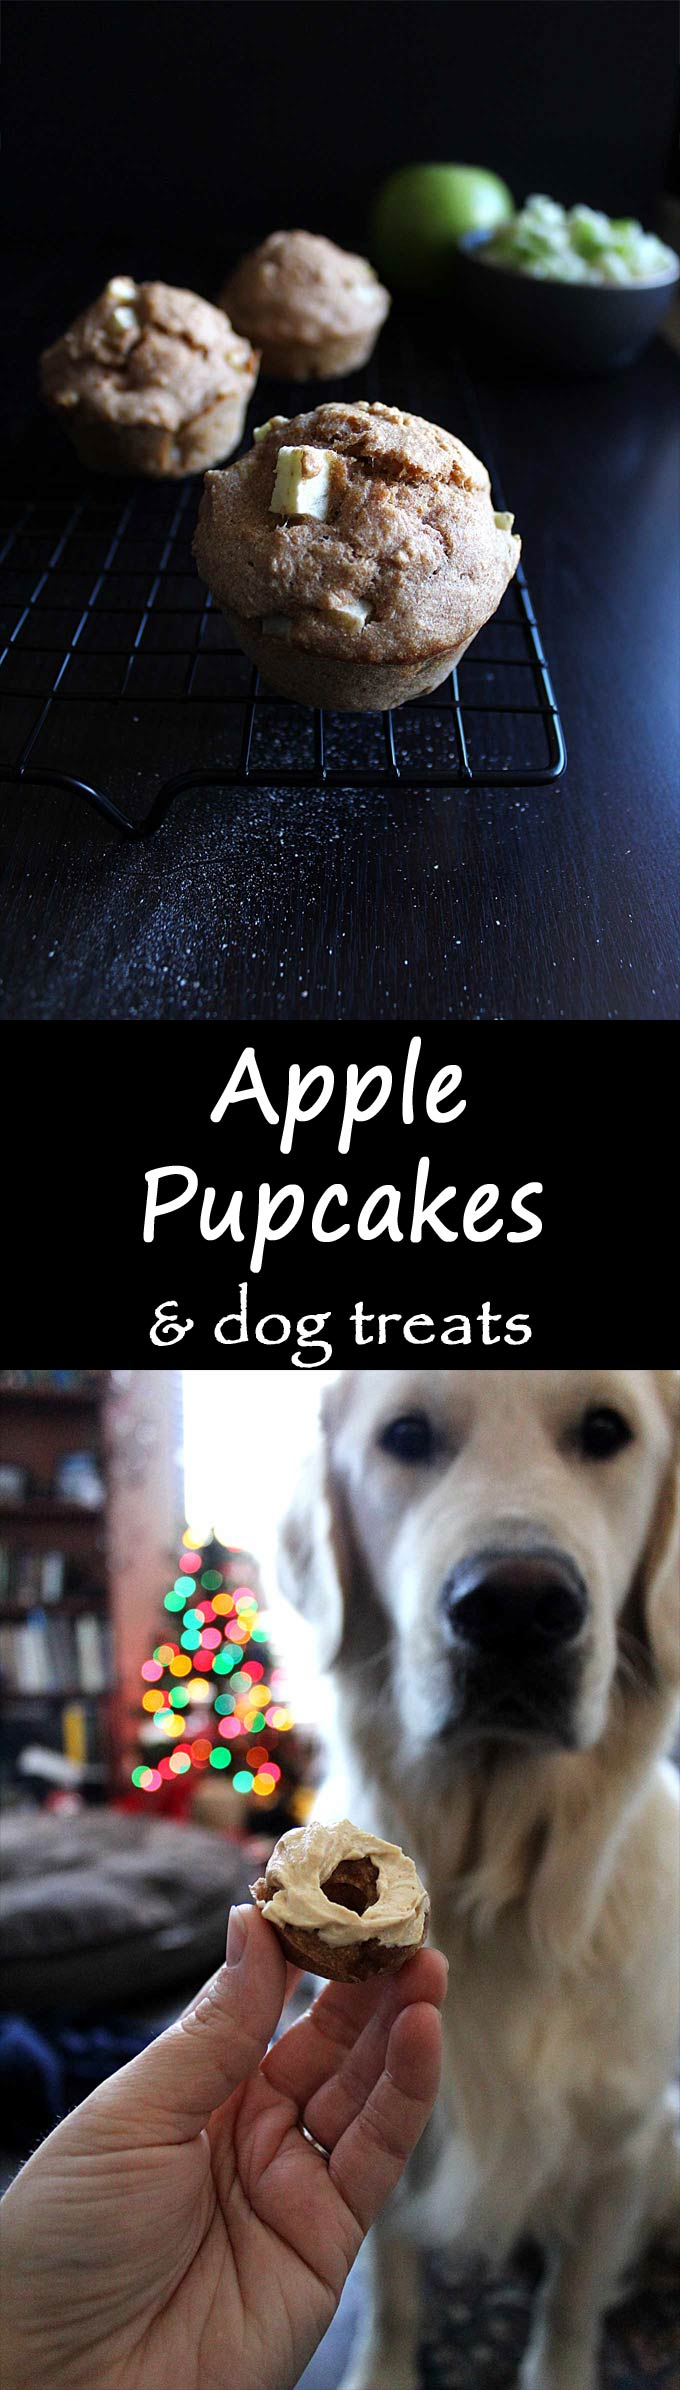 Apple Pupcakes with Peanut Butter Yogurt Frosting! a natural treat for all the pups! Can also be baked into mini donuts!